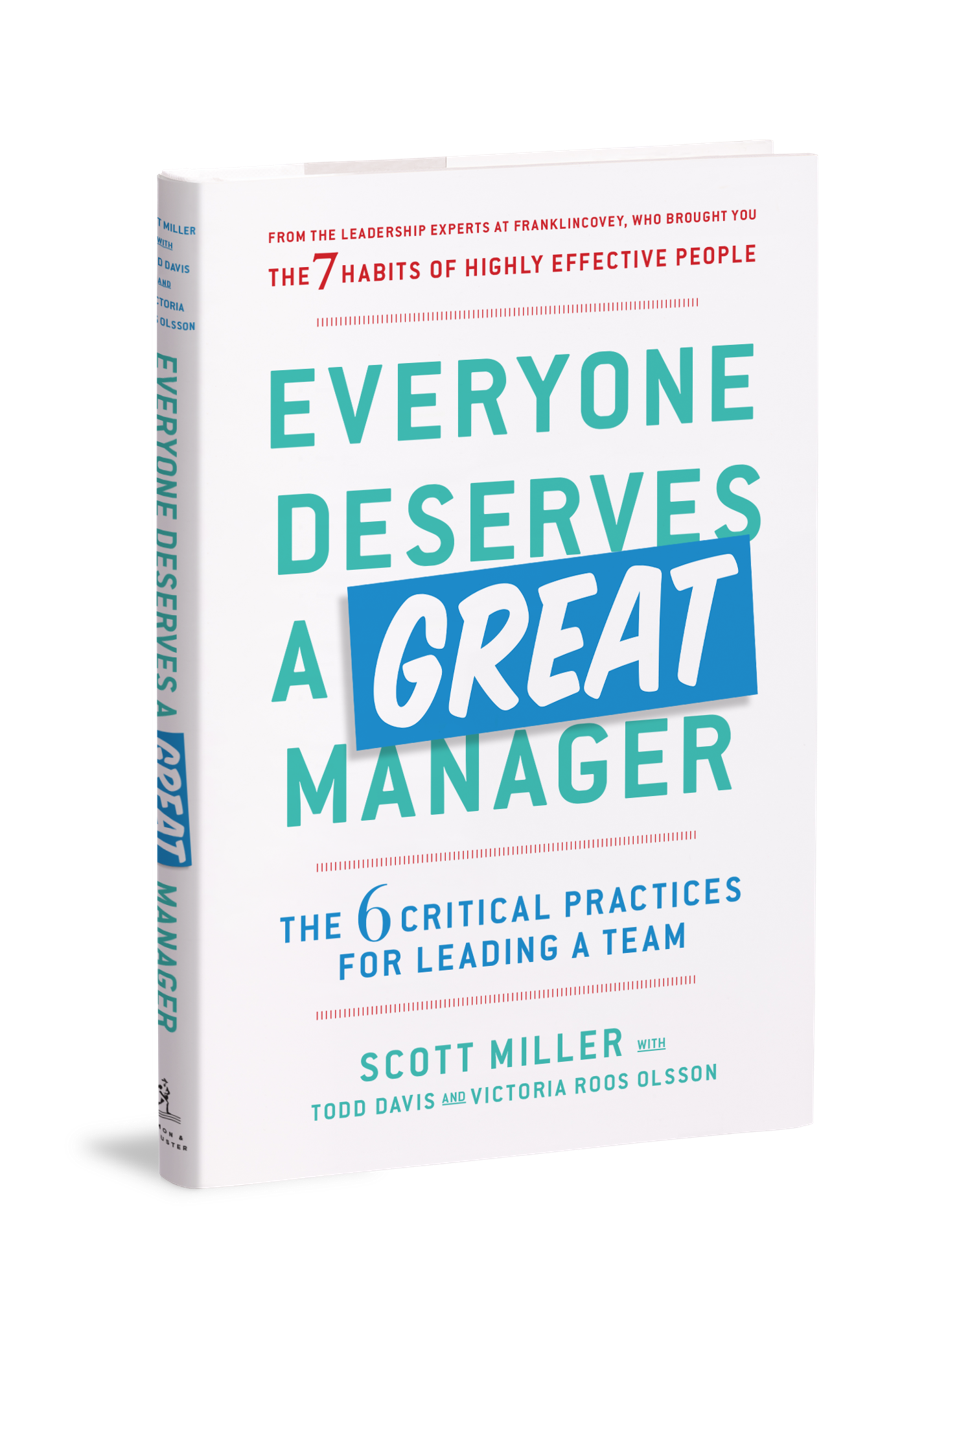 Tried and true practices can help new managers get off to a great start.